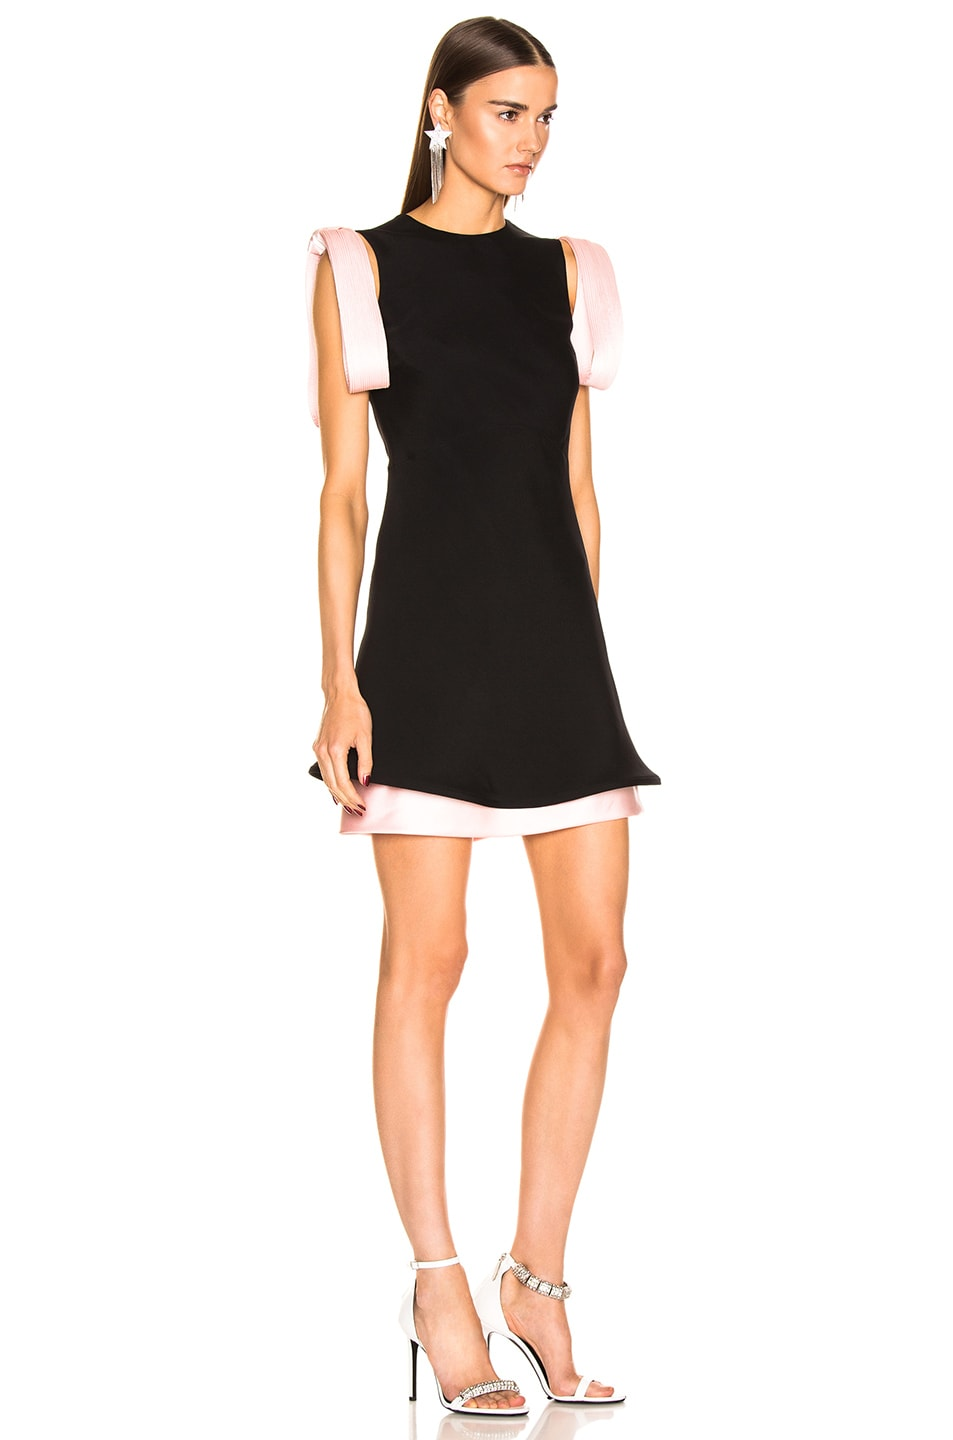 Image 2 of CALVIN KLEIN 205W39NYC Two Tone Dress in Black Pink